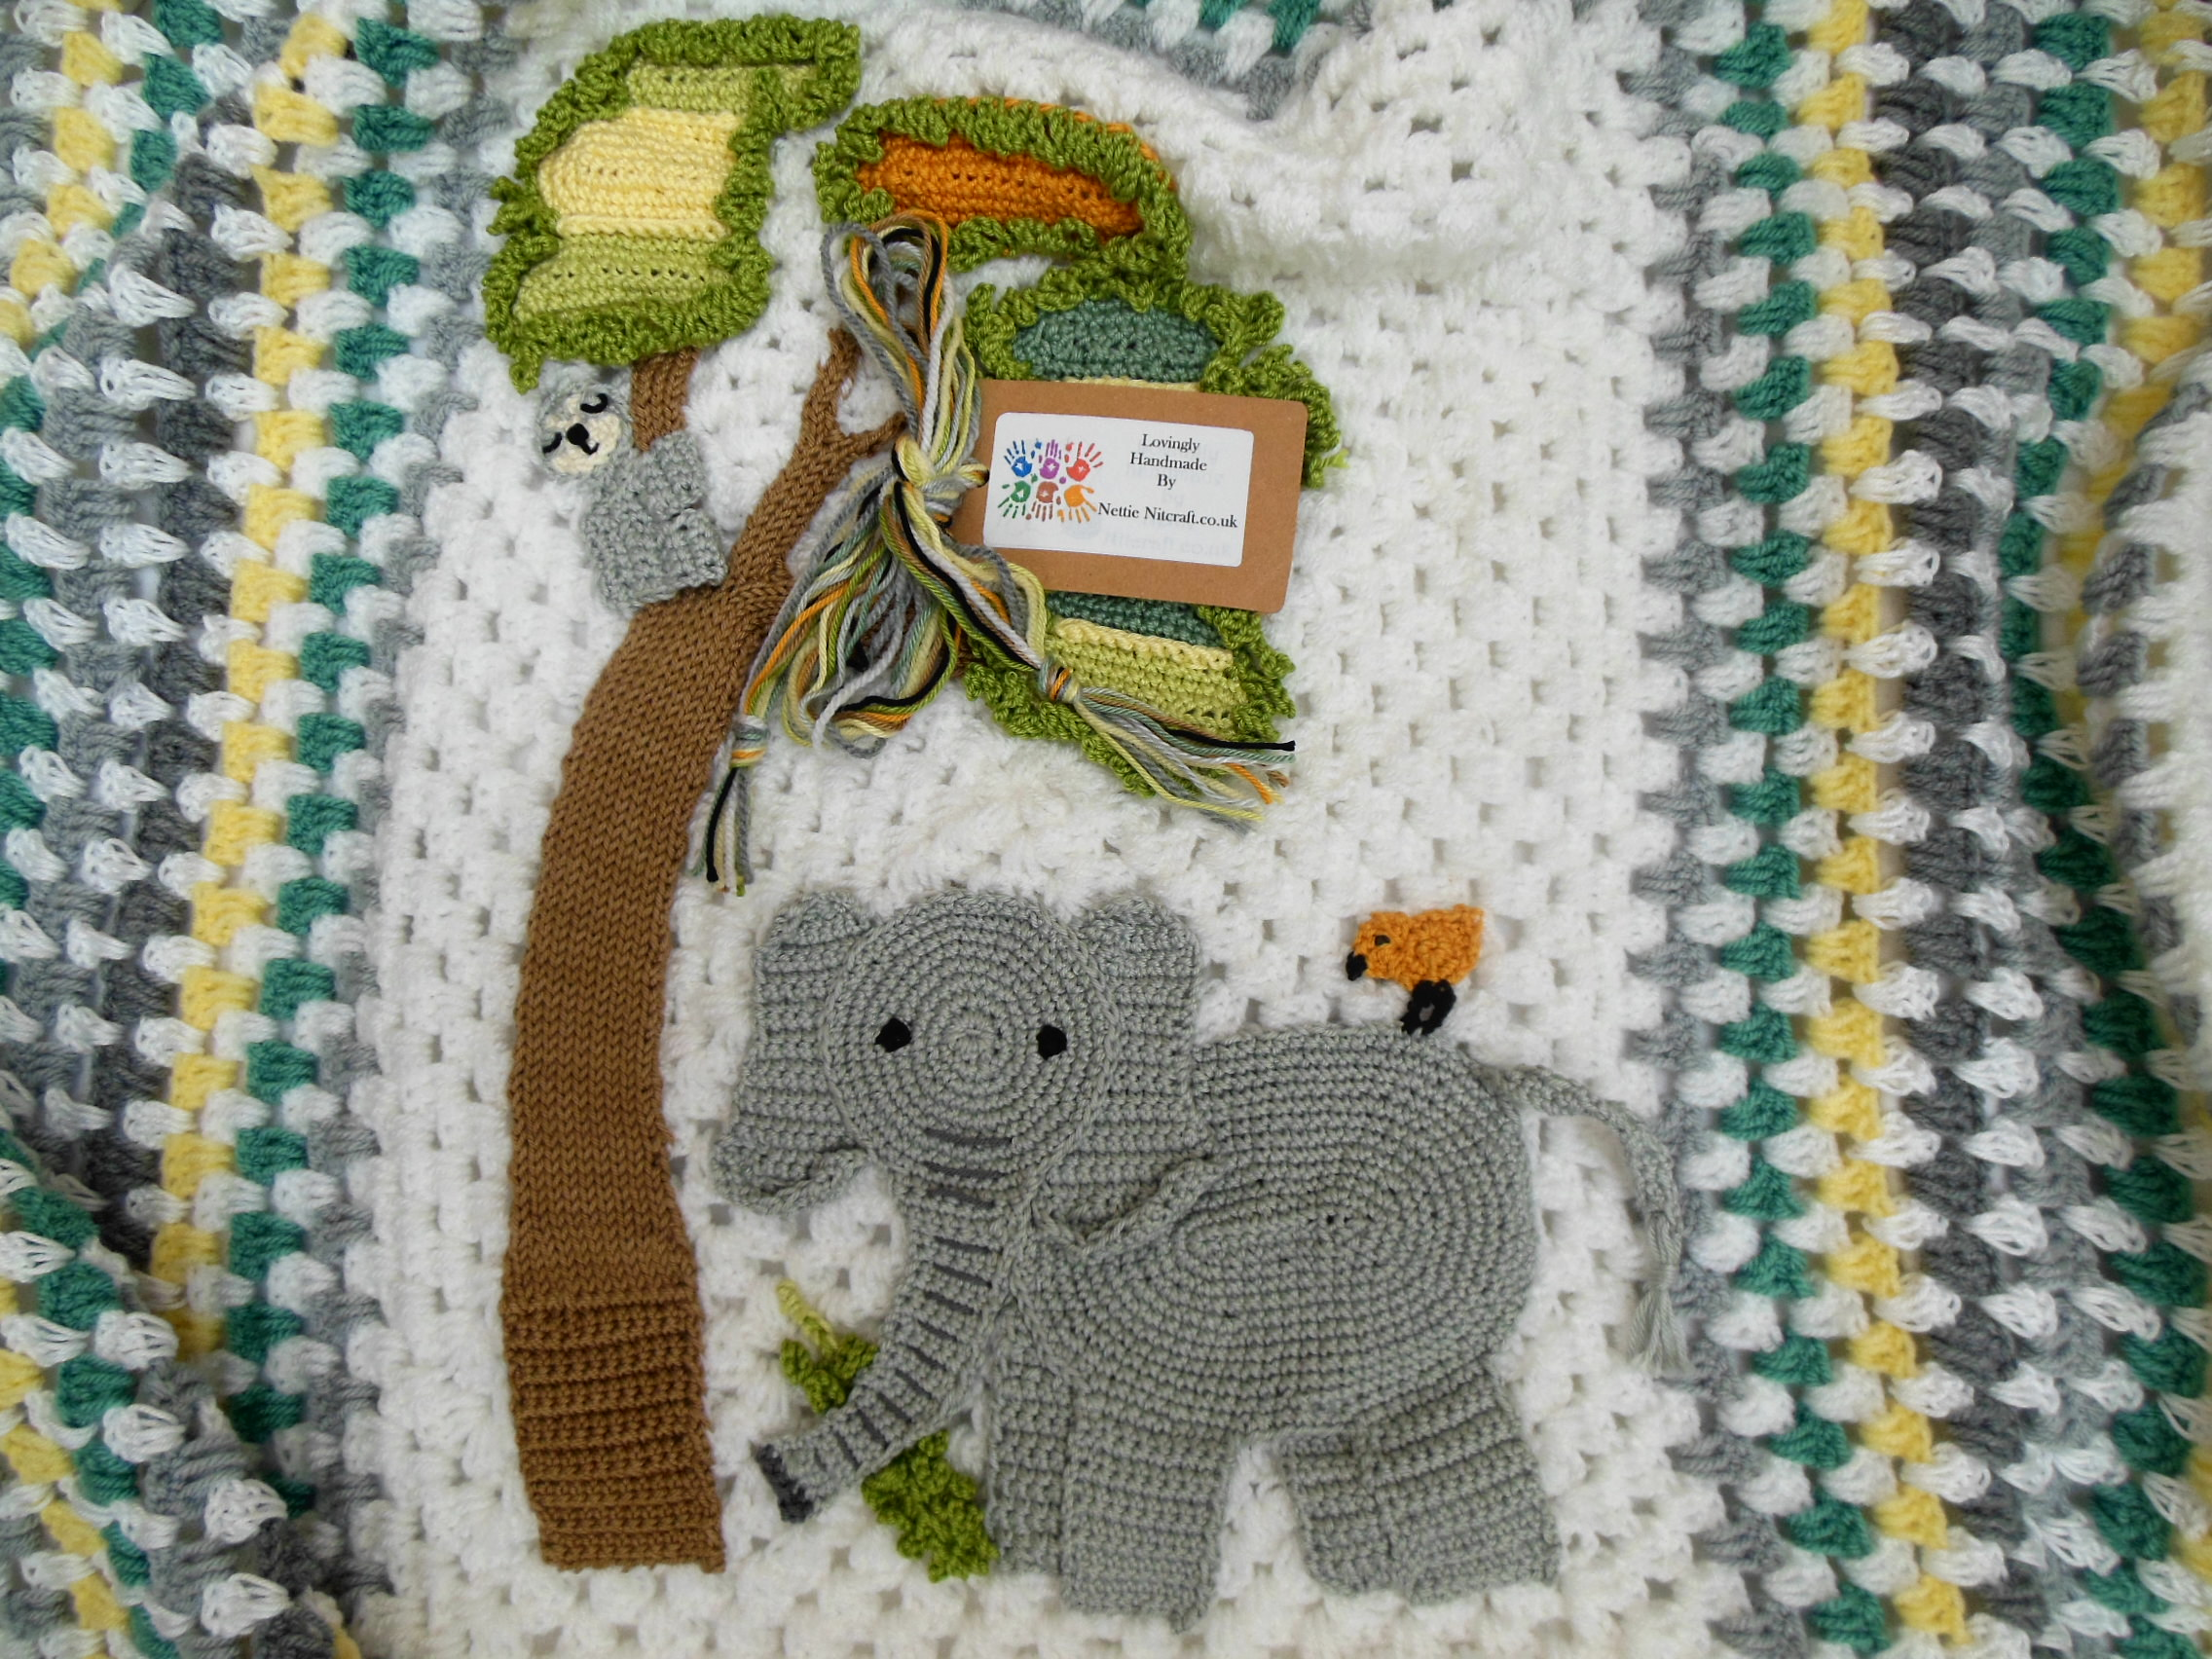 The Sweetest Crochet Elephant Patterns To Try | The WHOot | 1704x2272